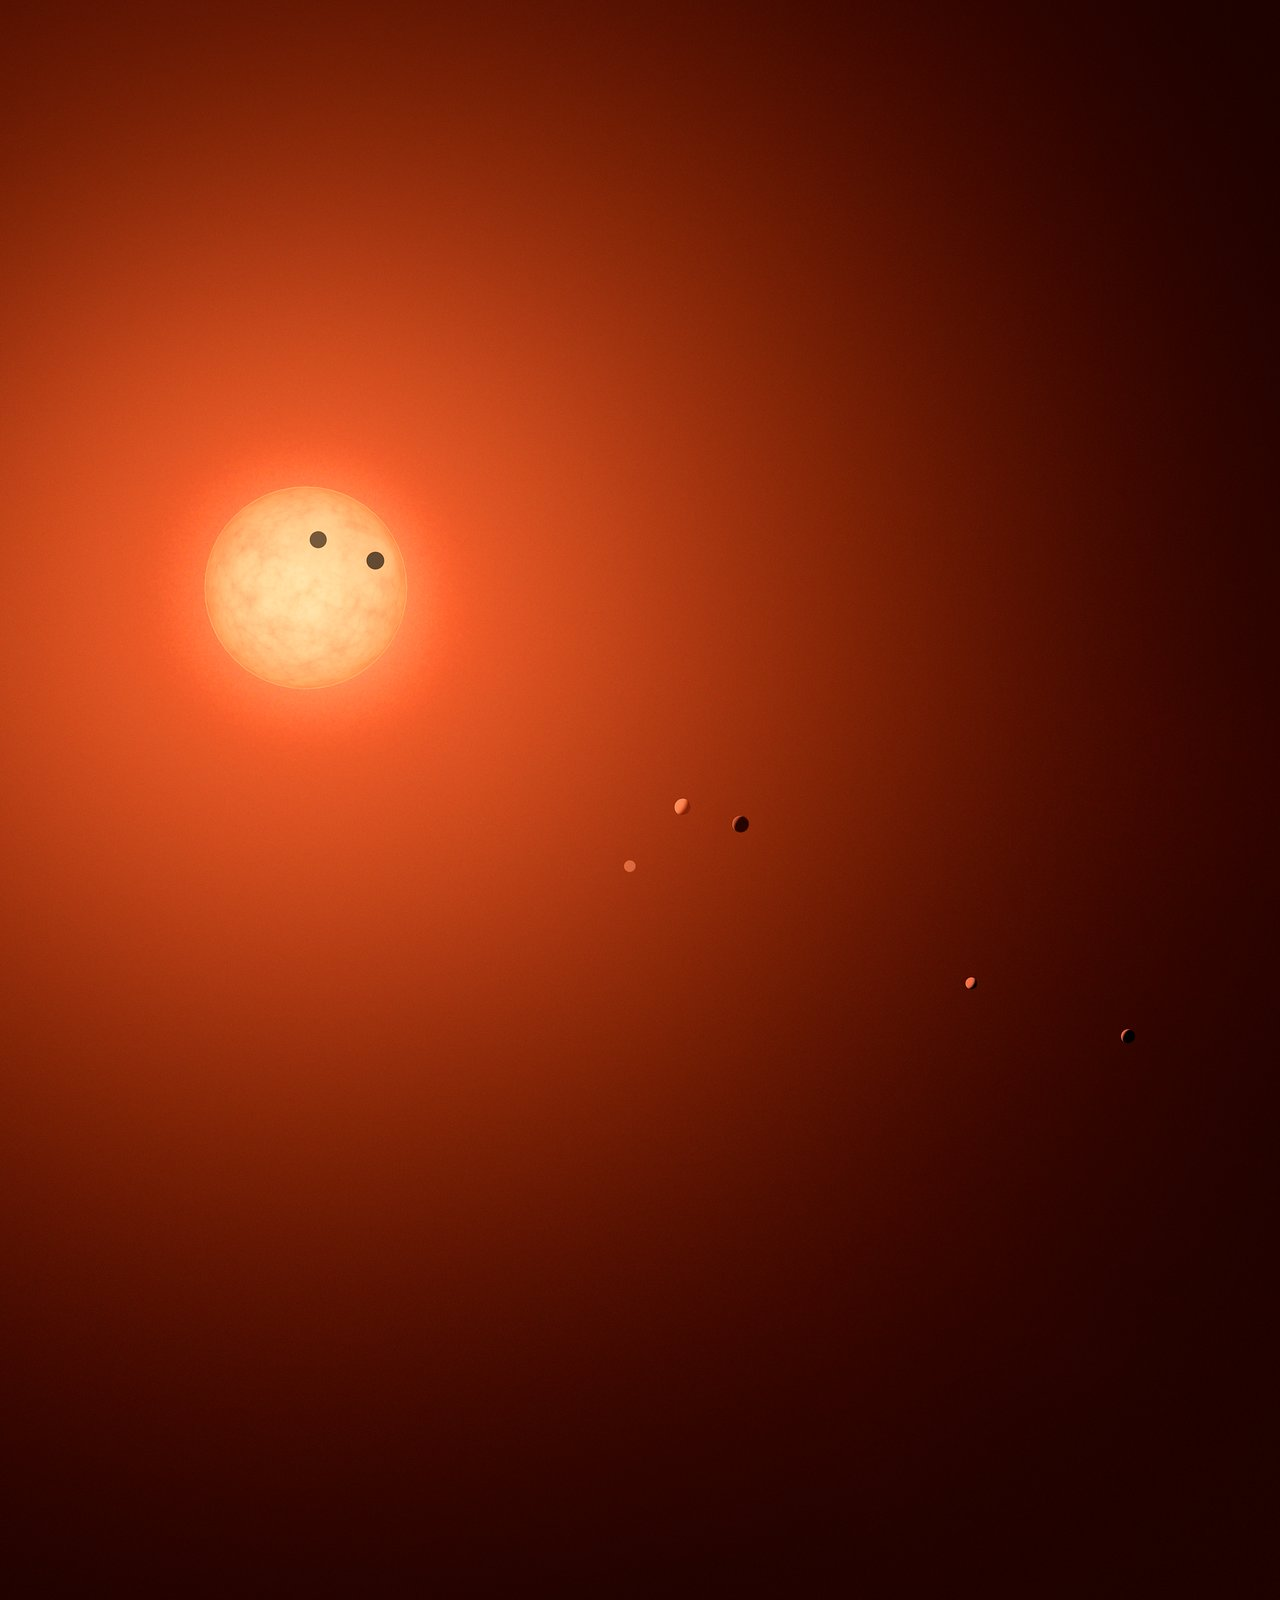 Science Release: Hubble delivers first insight into atmospheres of potentially habitable planets orbiting TRAPPIST-1